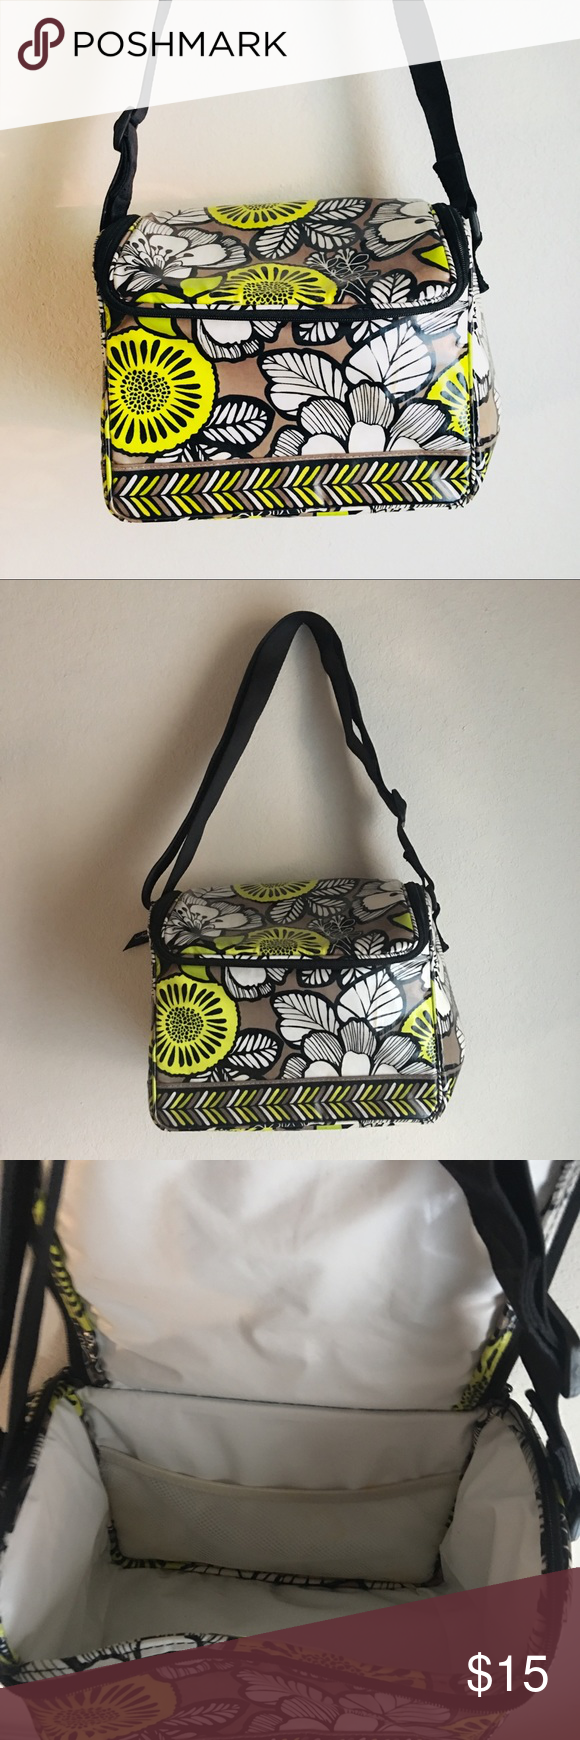 d56050ec3e Vera Bradley Lunch Box  DISCOUNTED SHIPPING  Vera Bradley lime green black  white gray floral lunch box. Adjustable strap and 2 zippers. Used a few  time and ...